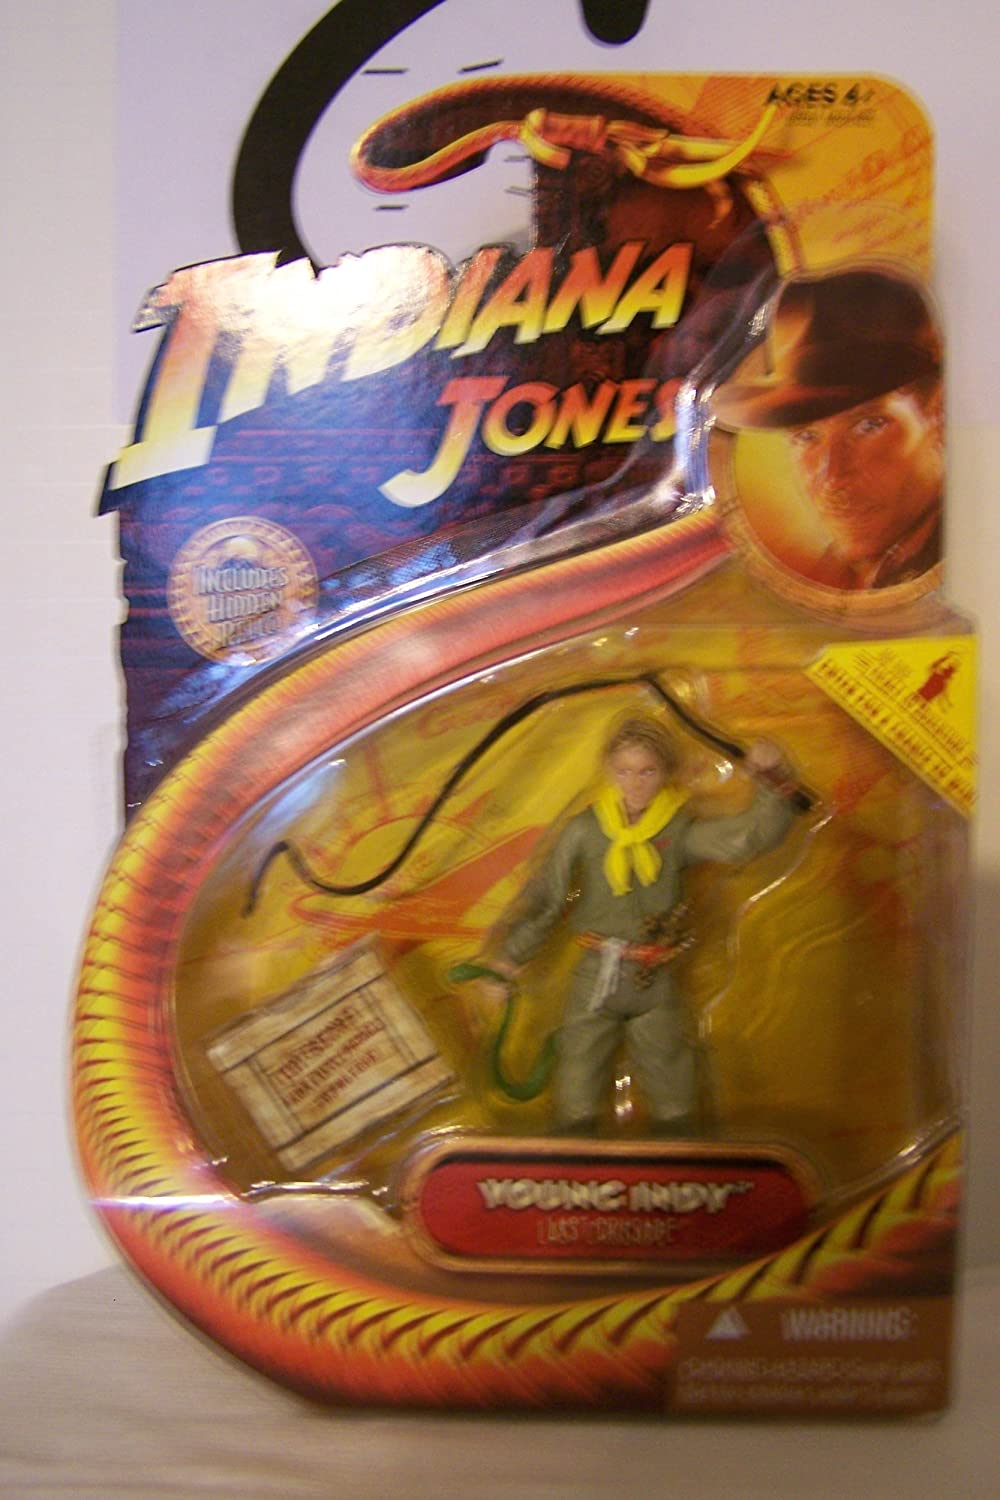 Indiana Jones 3 3/4 Inch - Young Indy - Last Crusade: Amazon.es: Juguetes y juegos